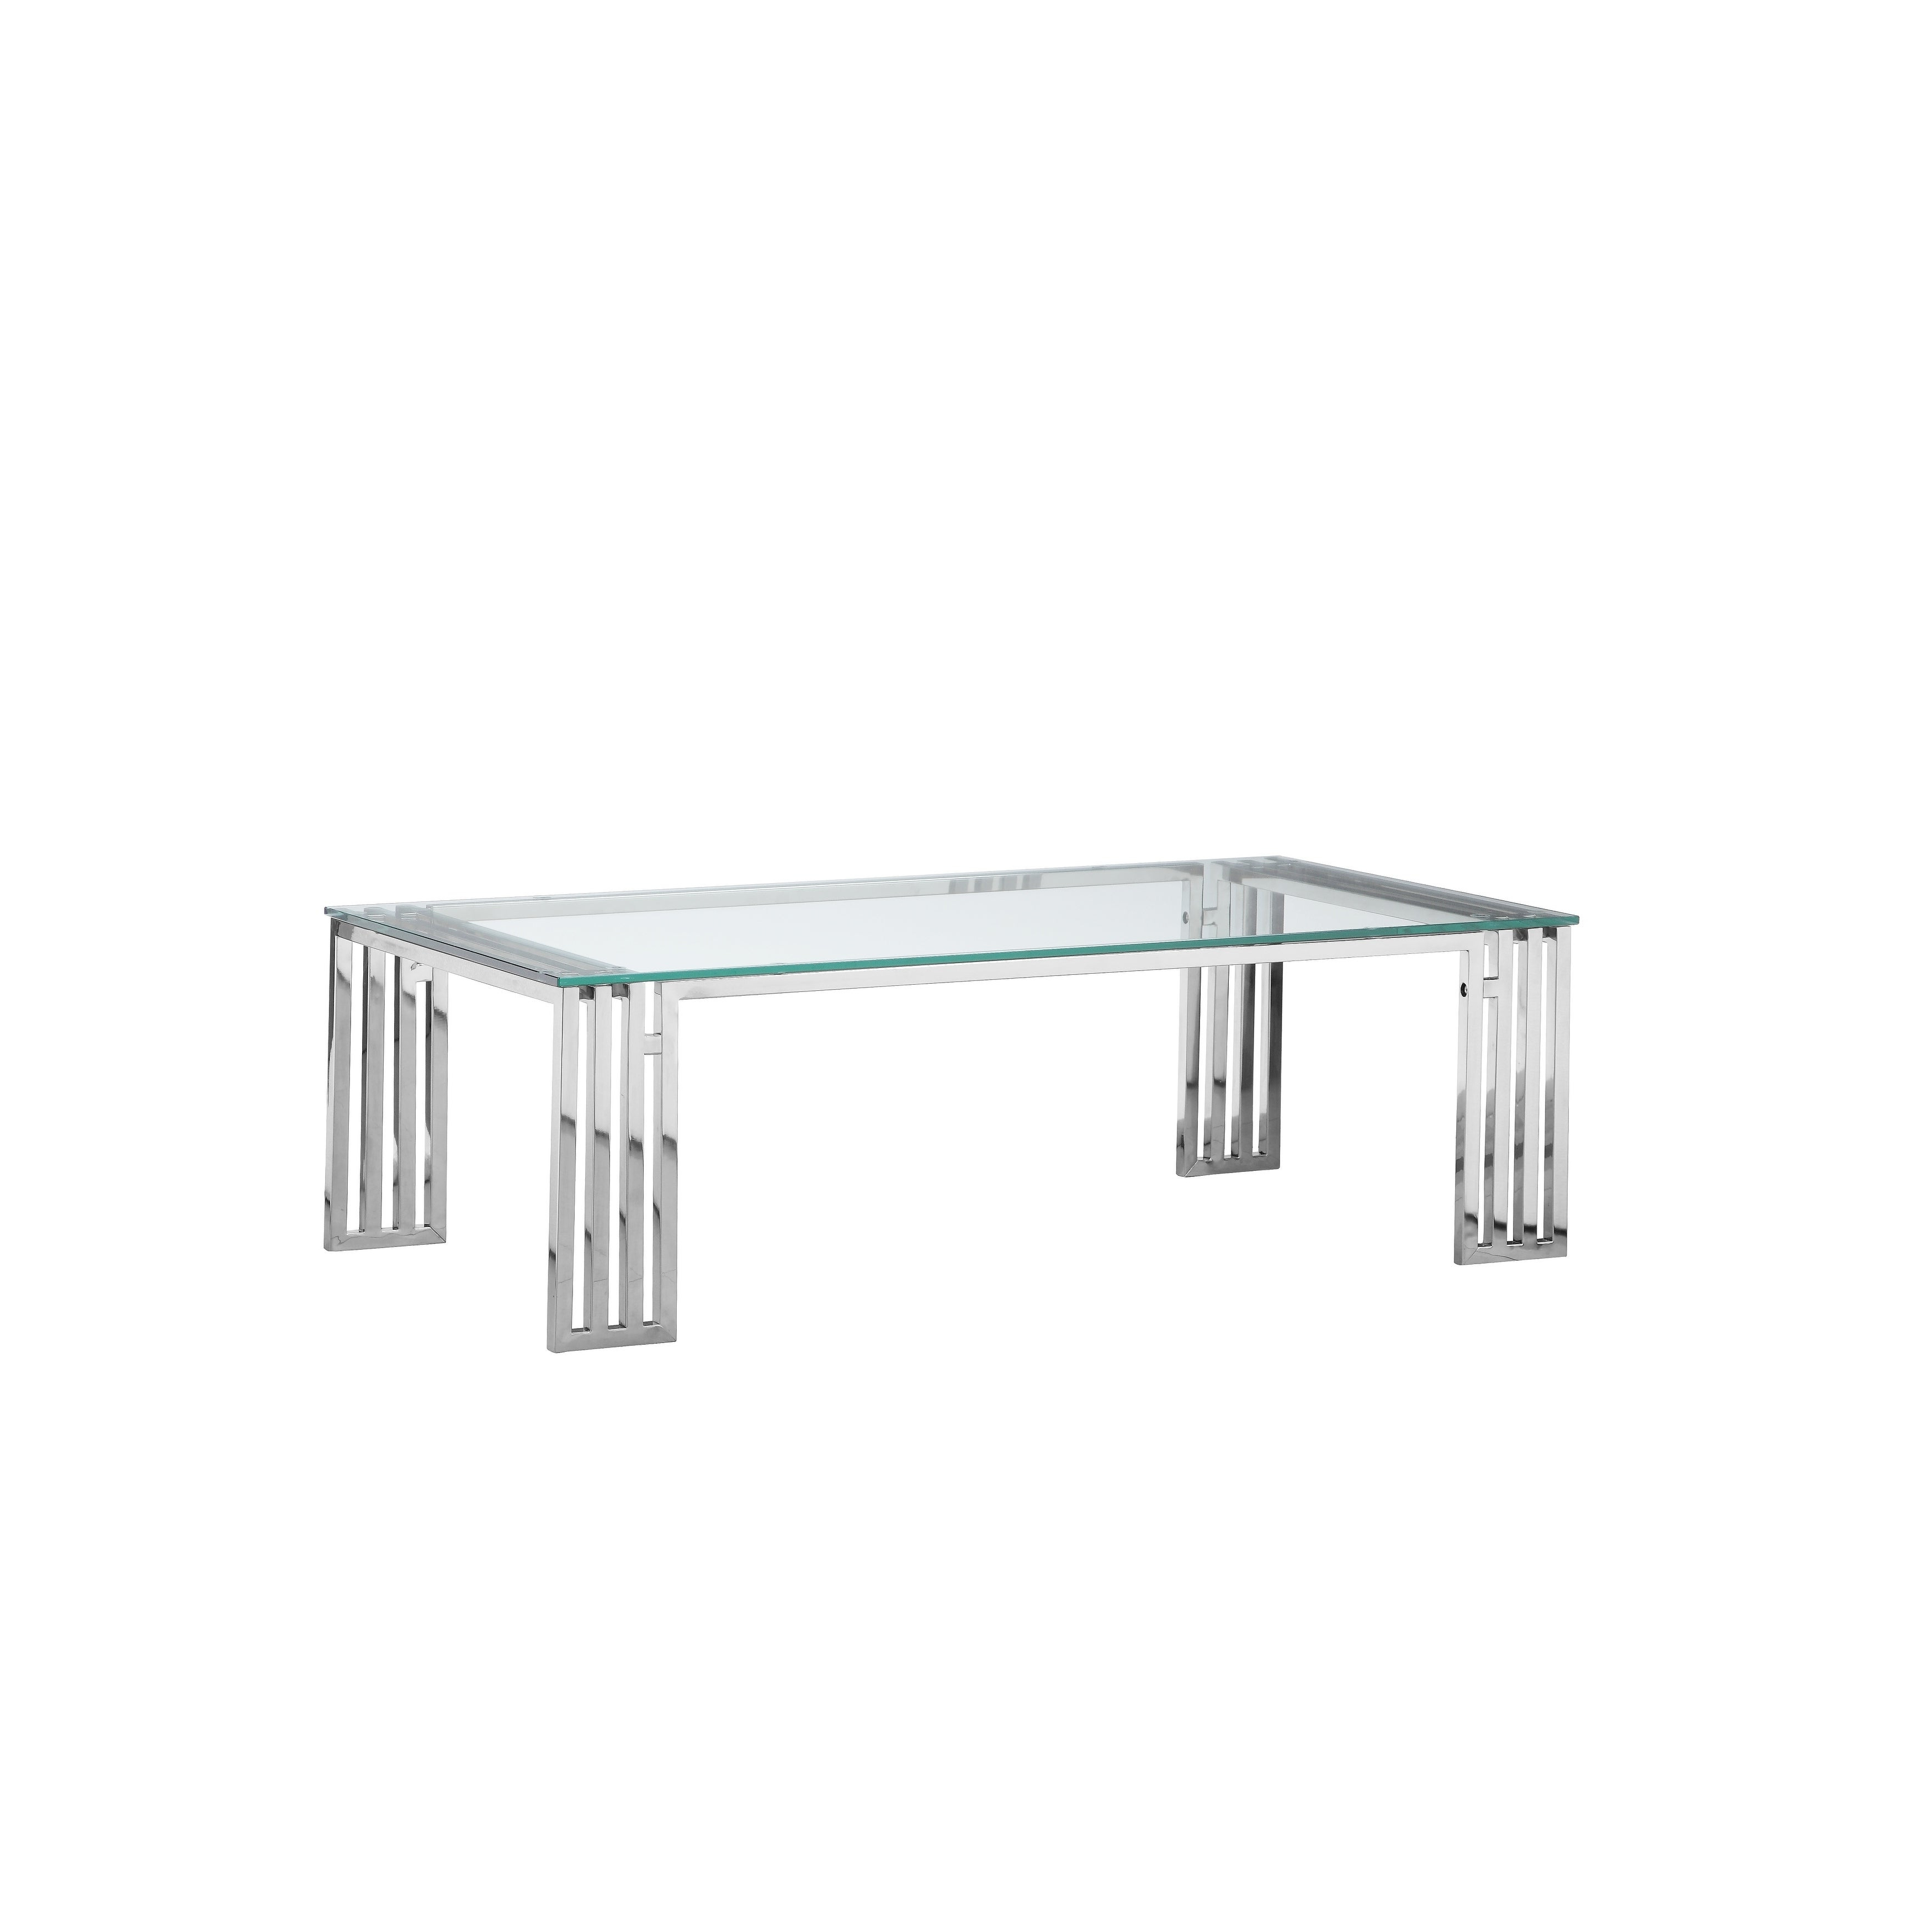 Strick & Bolton Esther Coffee Table Regarding Favorite Strick & Bolton Florence Chrome Coffee Tables (View 17 of 20)